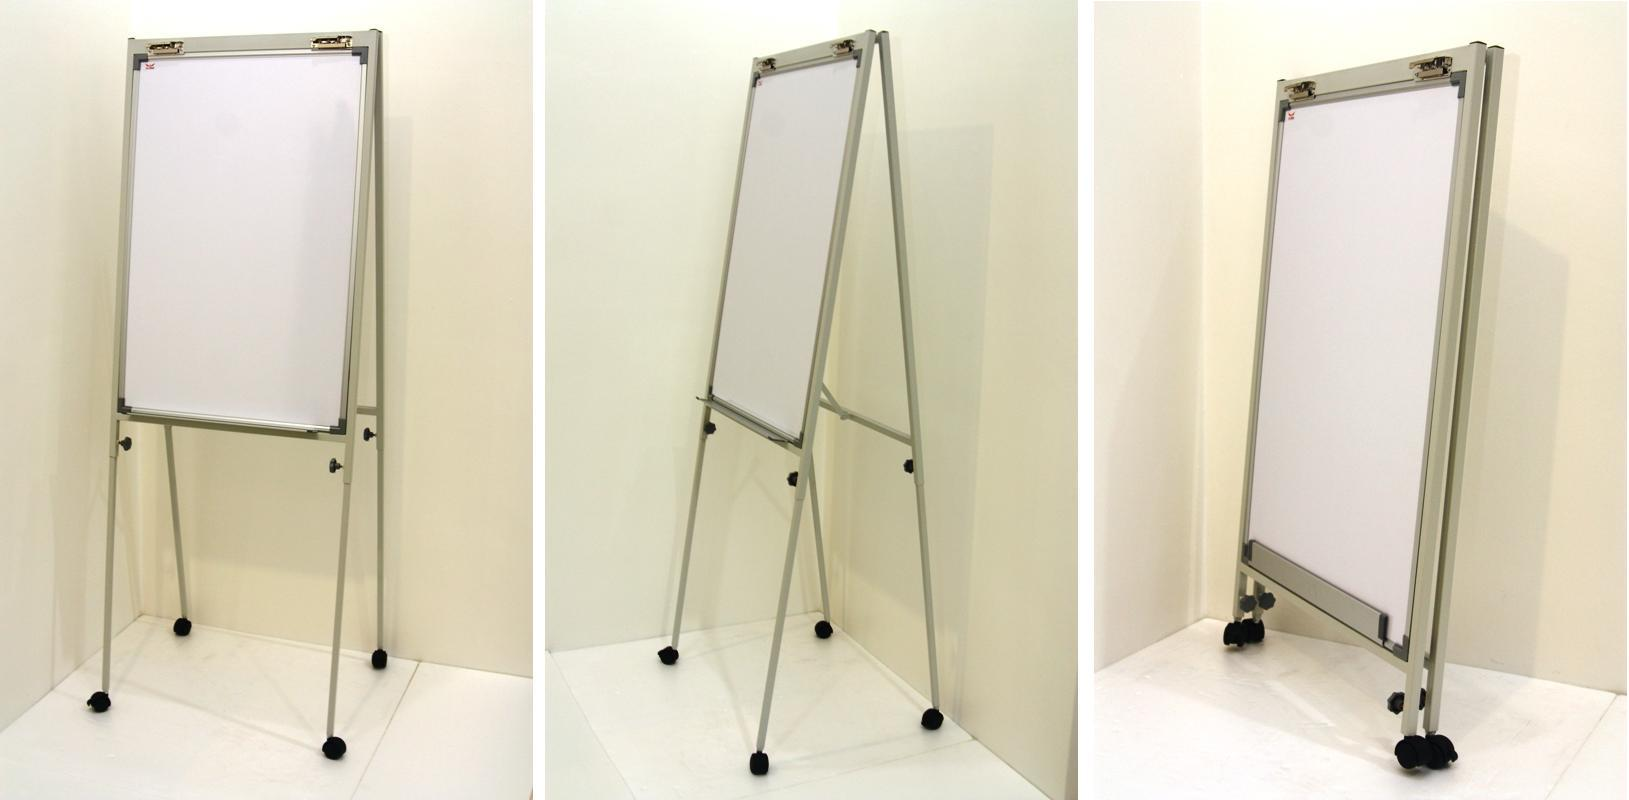 Diy Whiteboard Stand Diy Projects